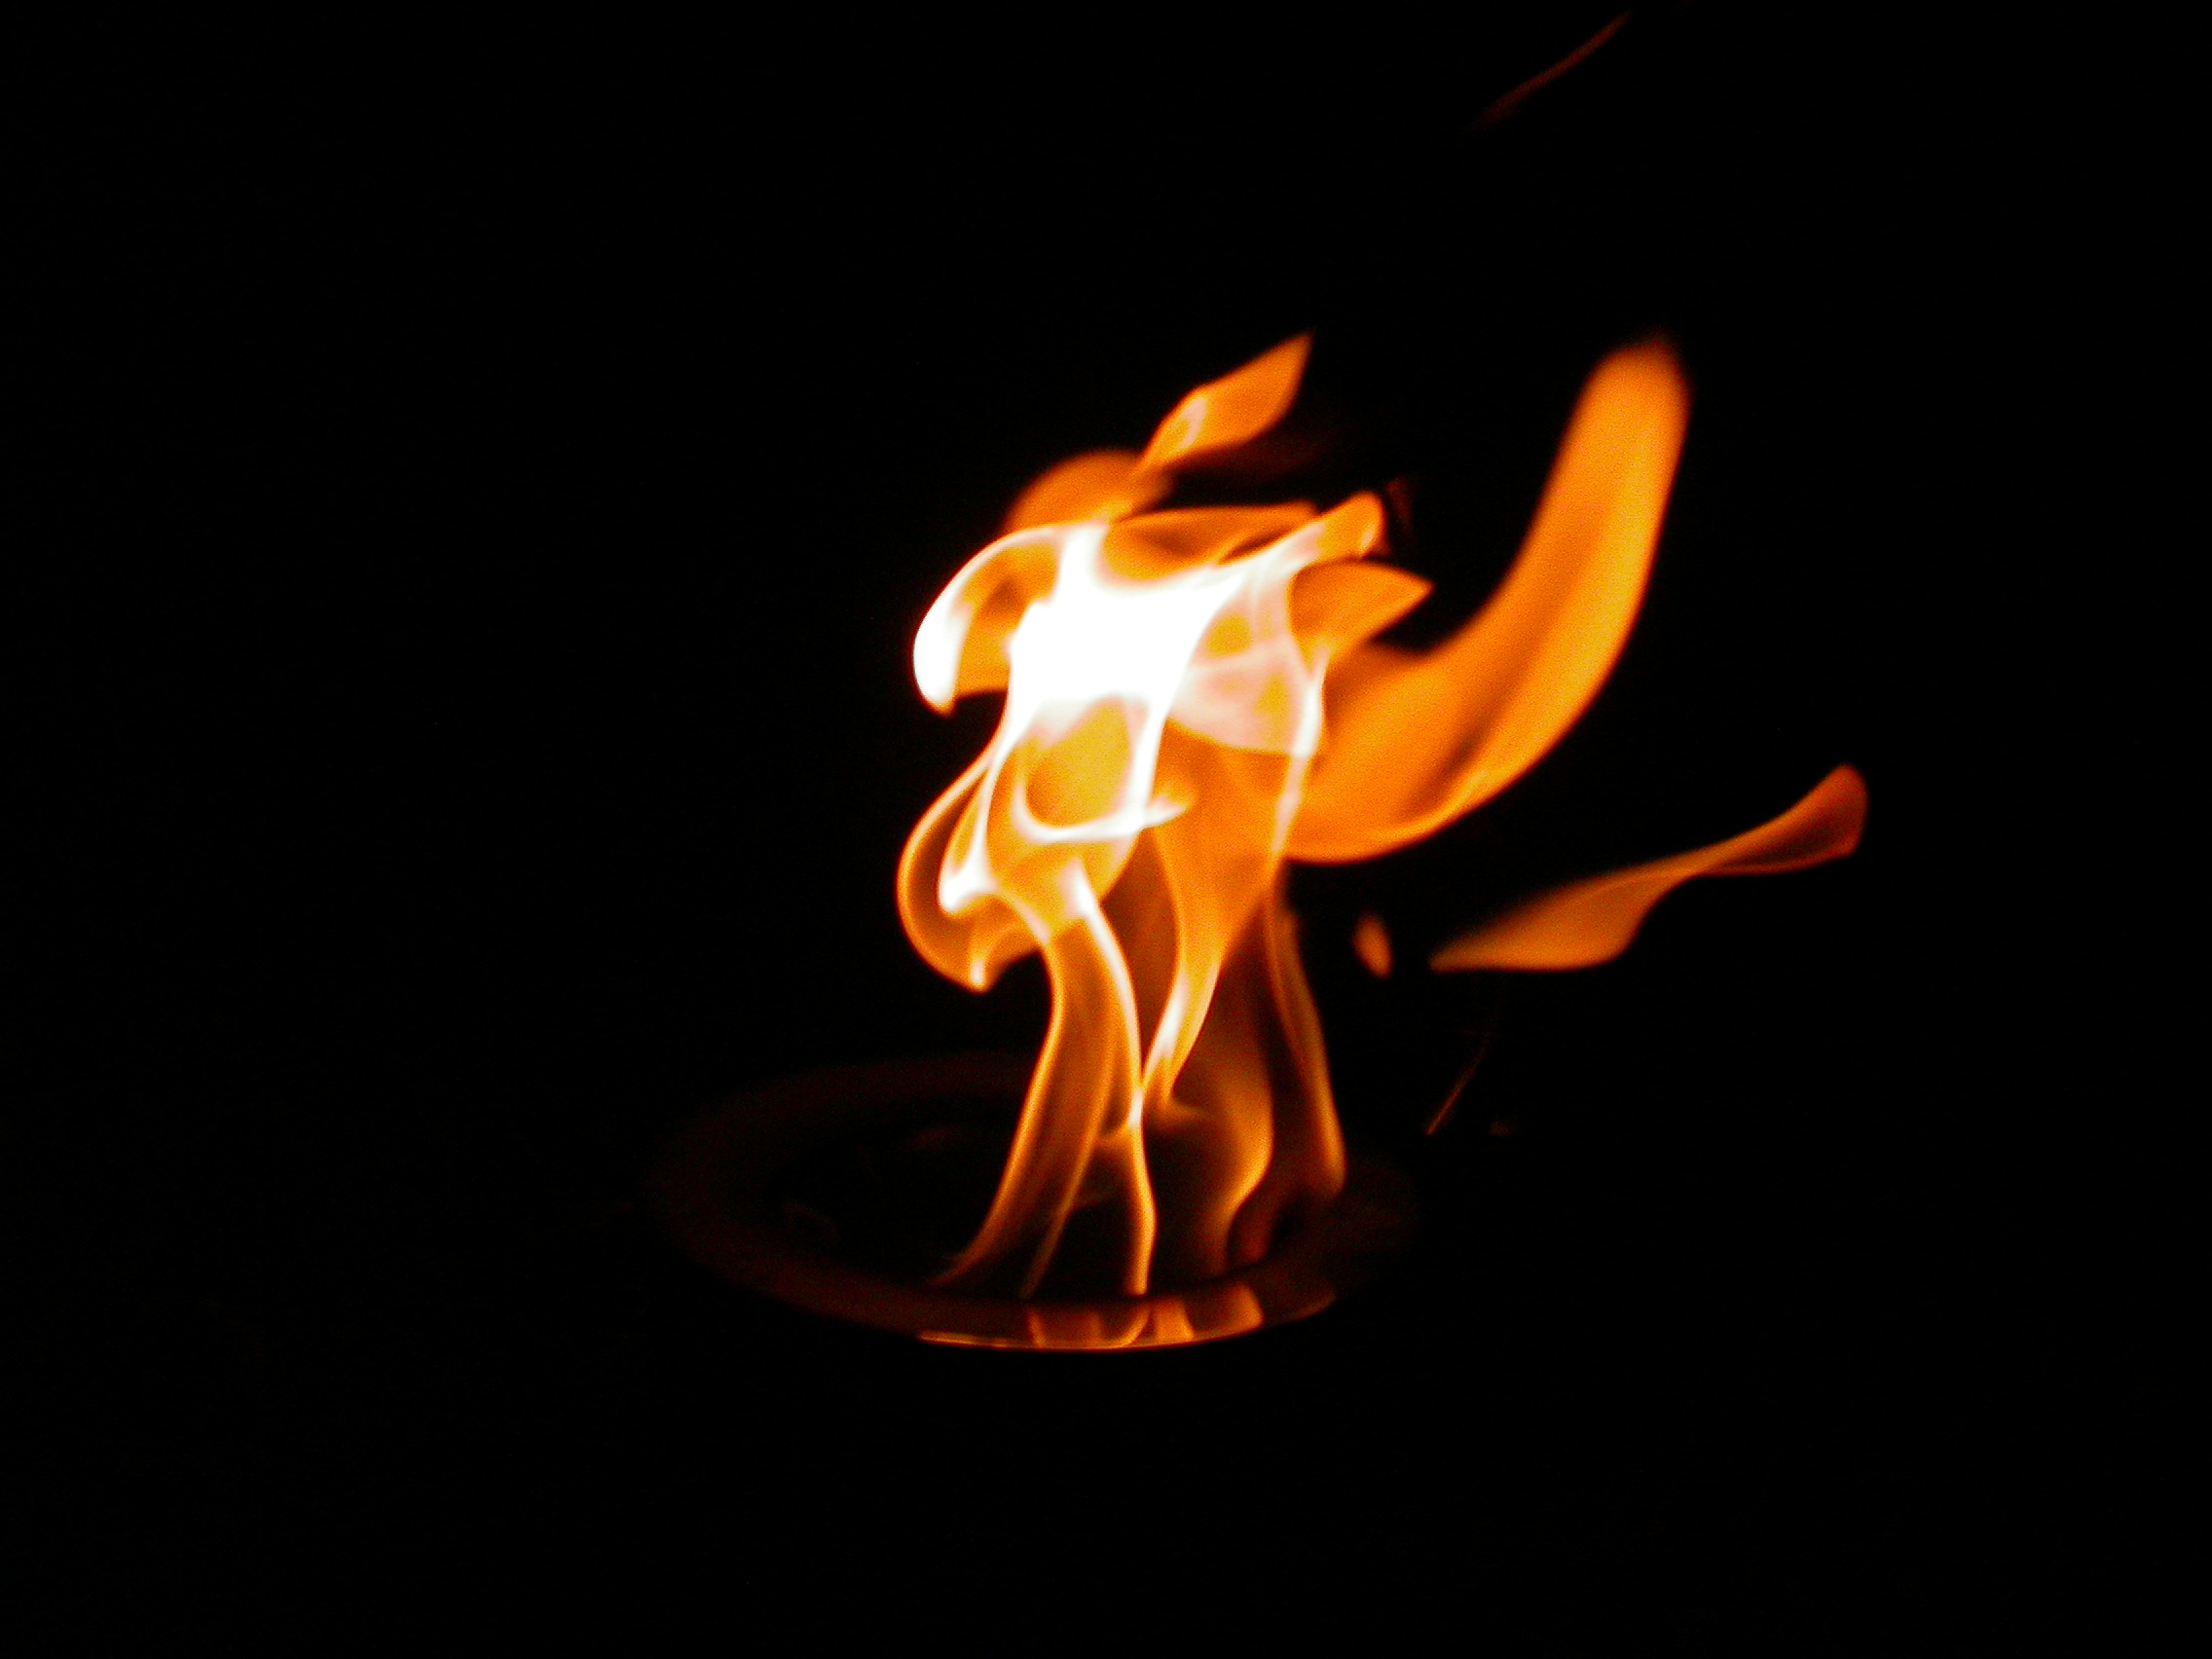 paul flame hot fire element